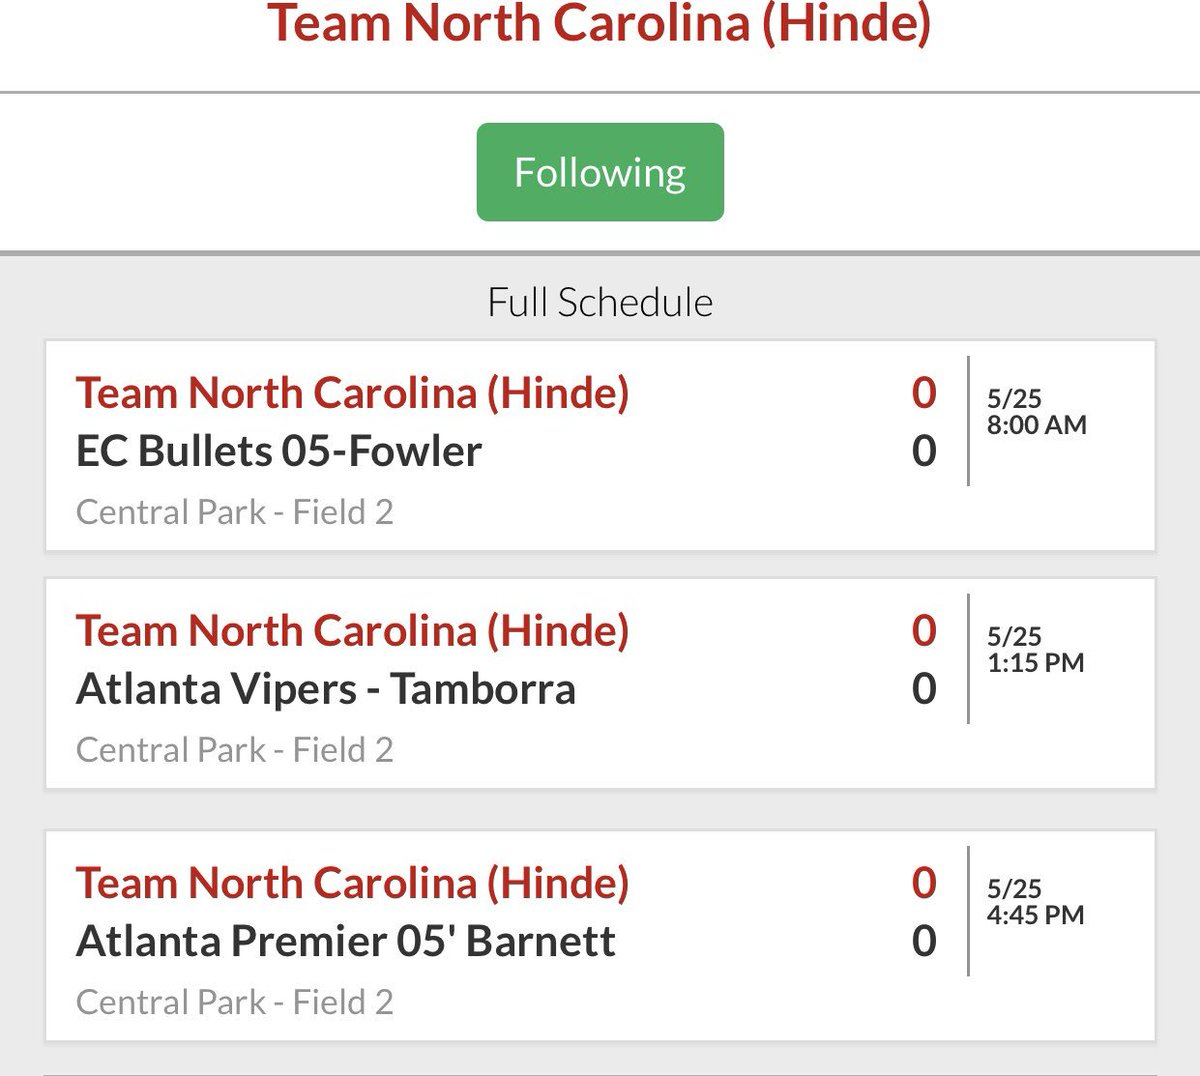 We're headed to Cumming, GA for the Atlanta Fastpitch Memorial Day Classic this weekend! Looking forward to awesome weather and great competition! #TeamNC <br>http://pic.twitter.com/NpwBMpAHxU